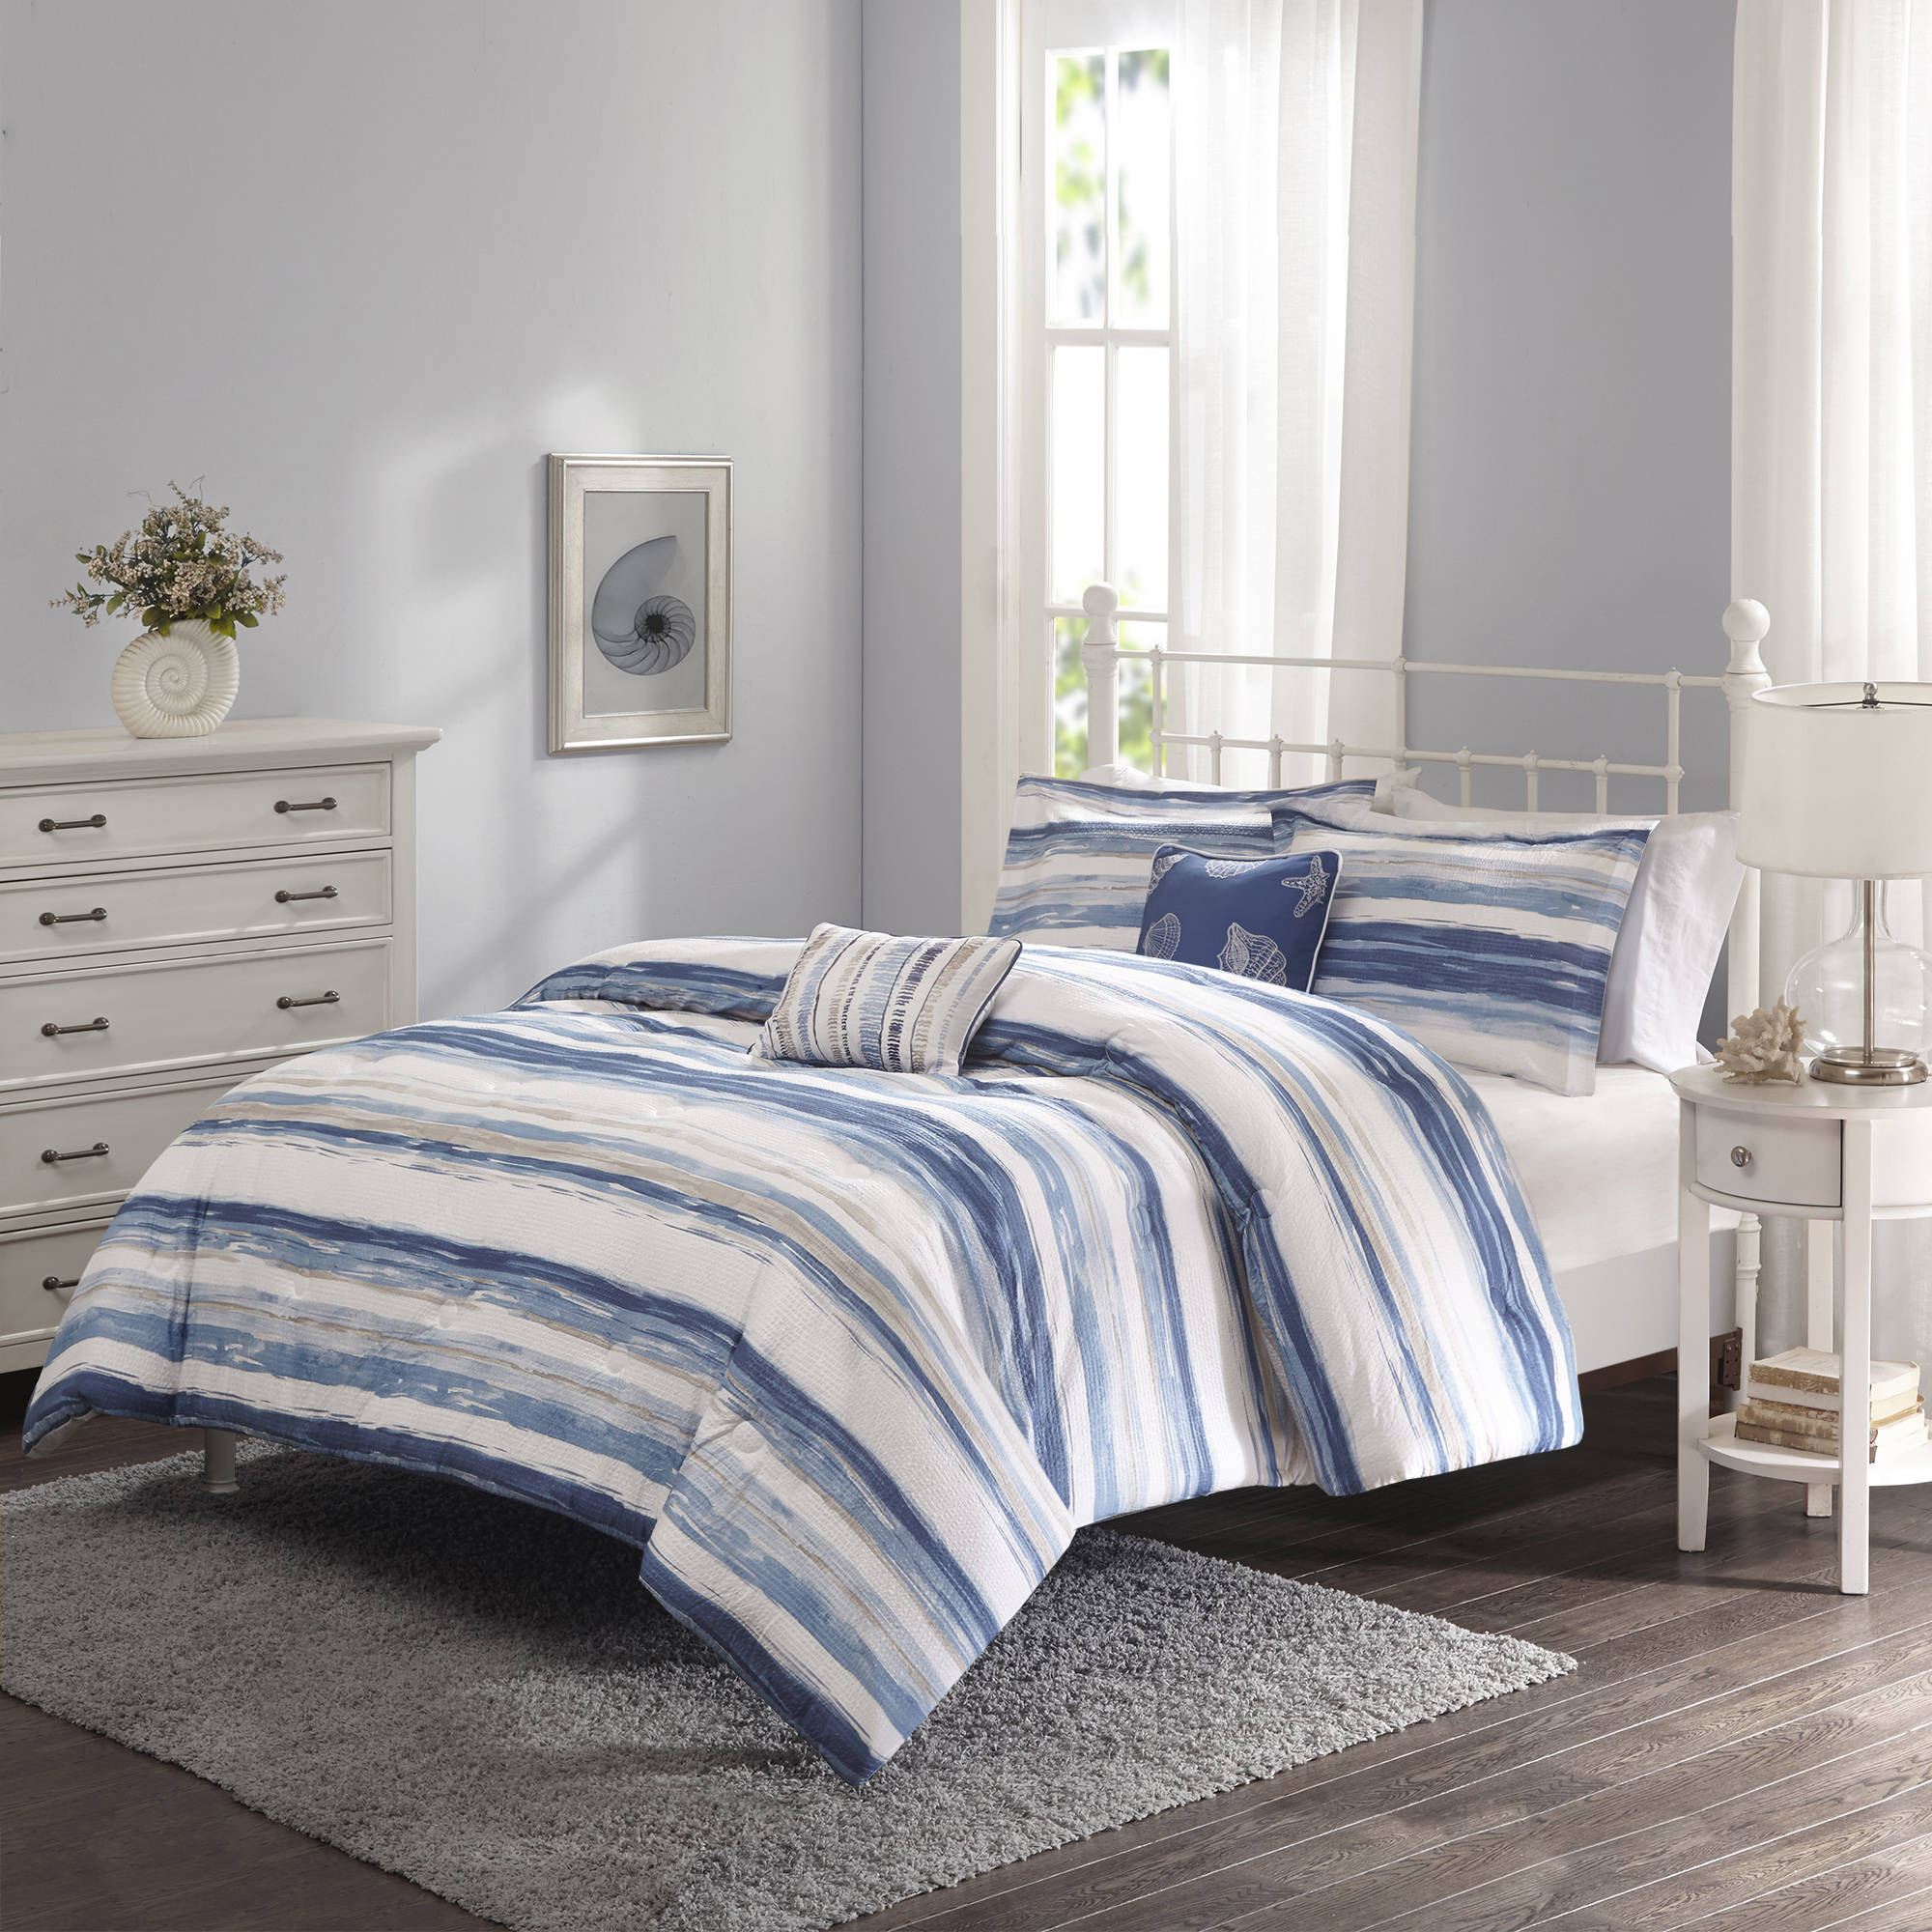 Blue Striped Bedding White Bed